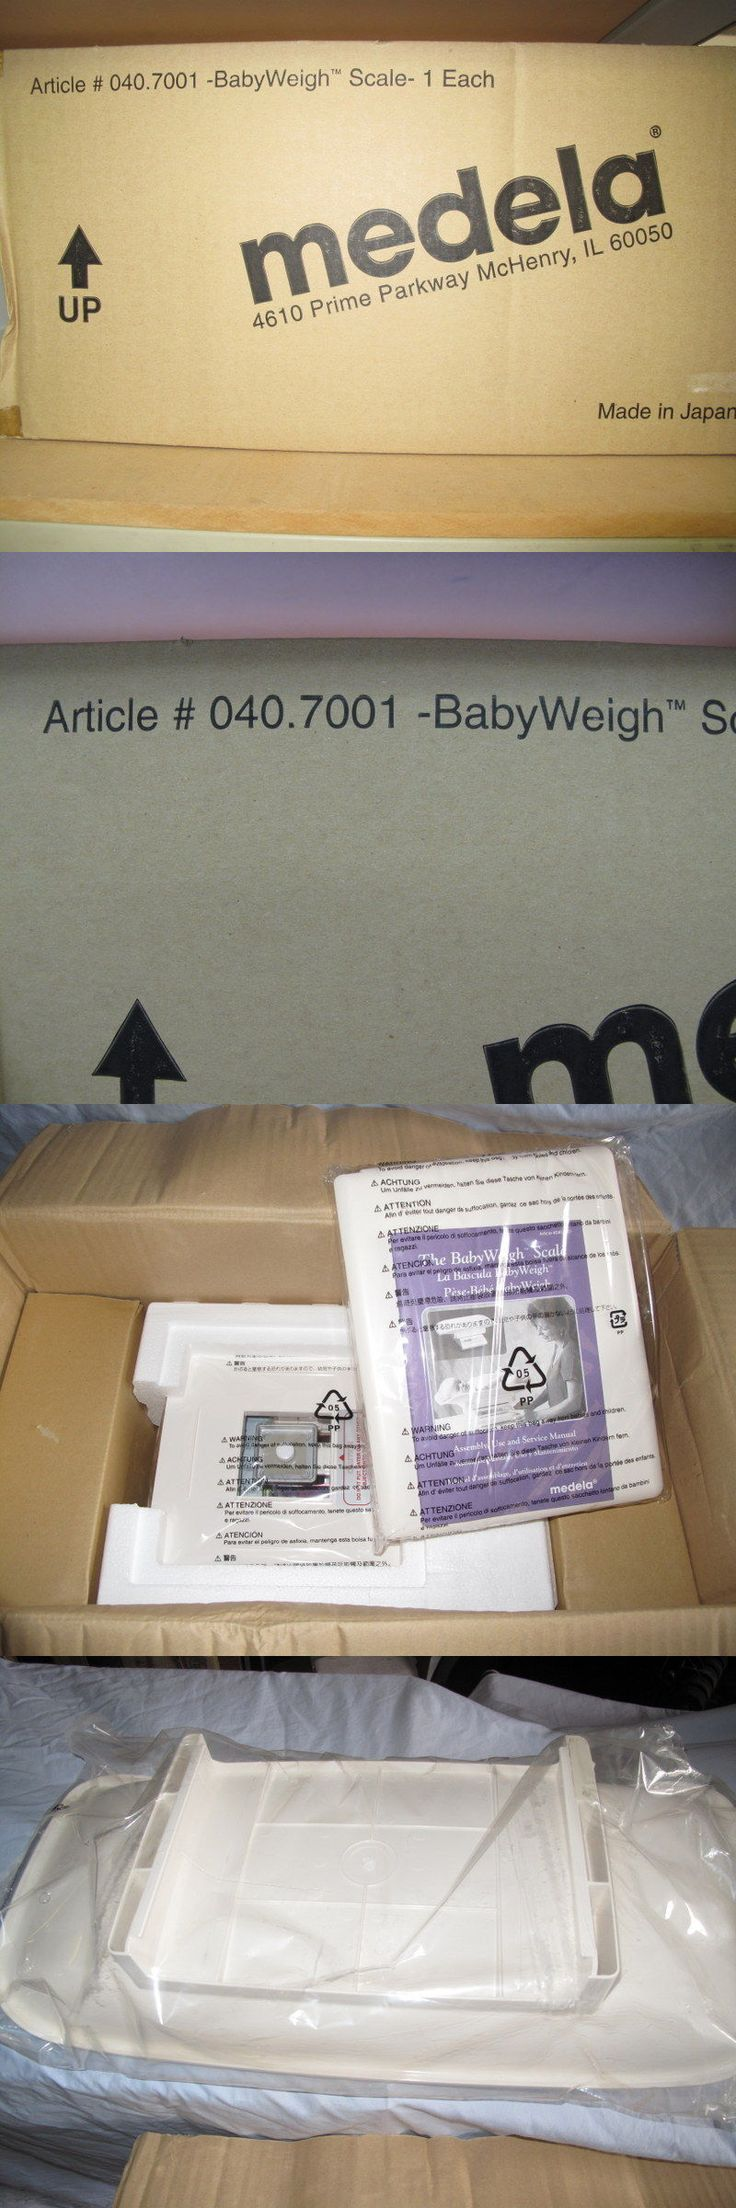 Other Baby 1261: Medela Baby Weigh Scale -> BUY IT NOW ONLY: $595 on eBay!